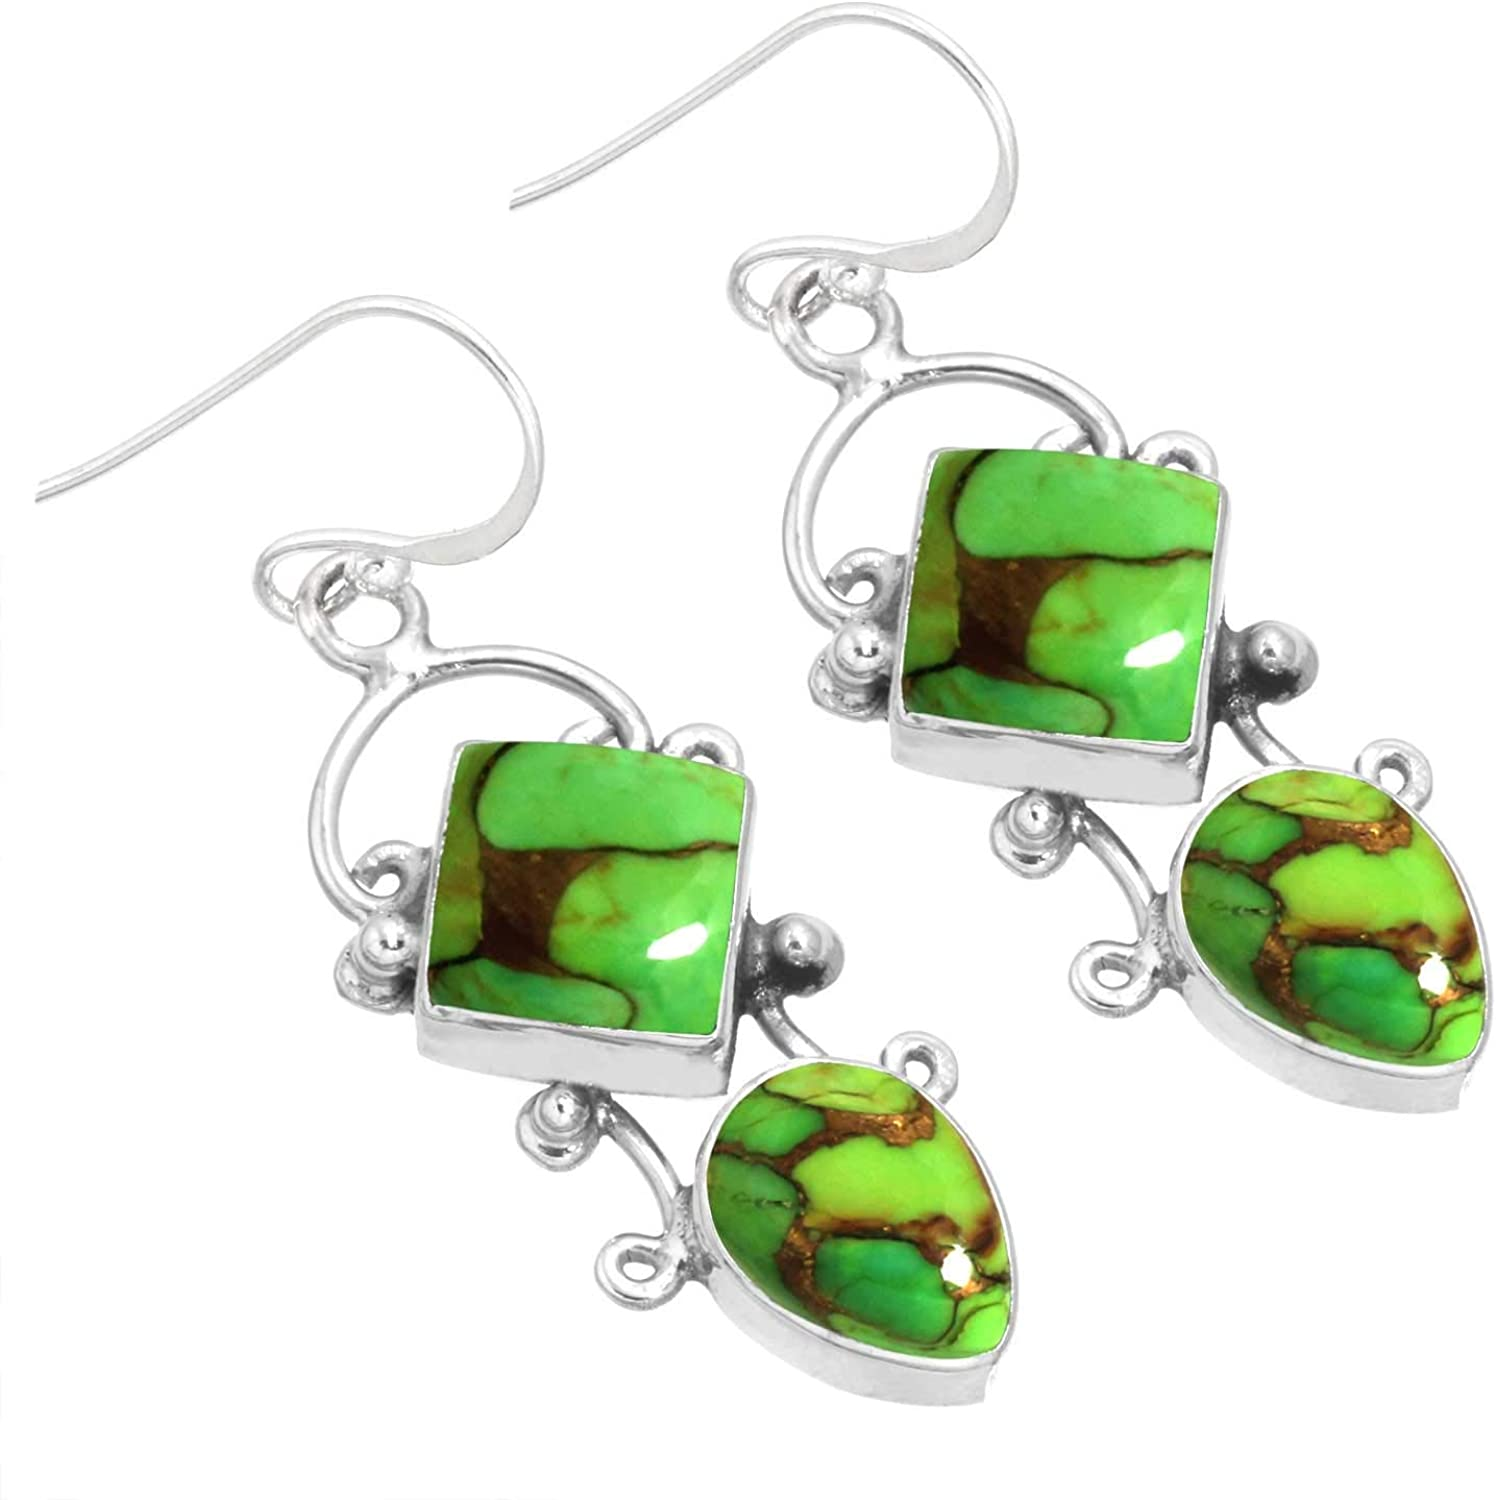 Solid 925 Sterling Silver Gemstone Spasm price 9 Handmade Complete Free Shipping Women Earring For